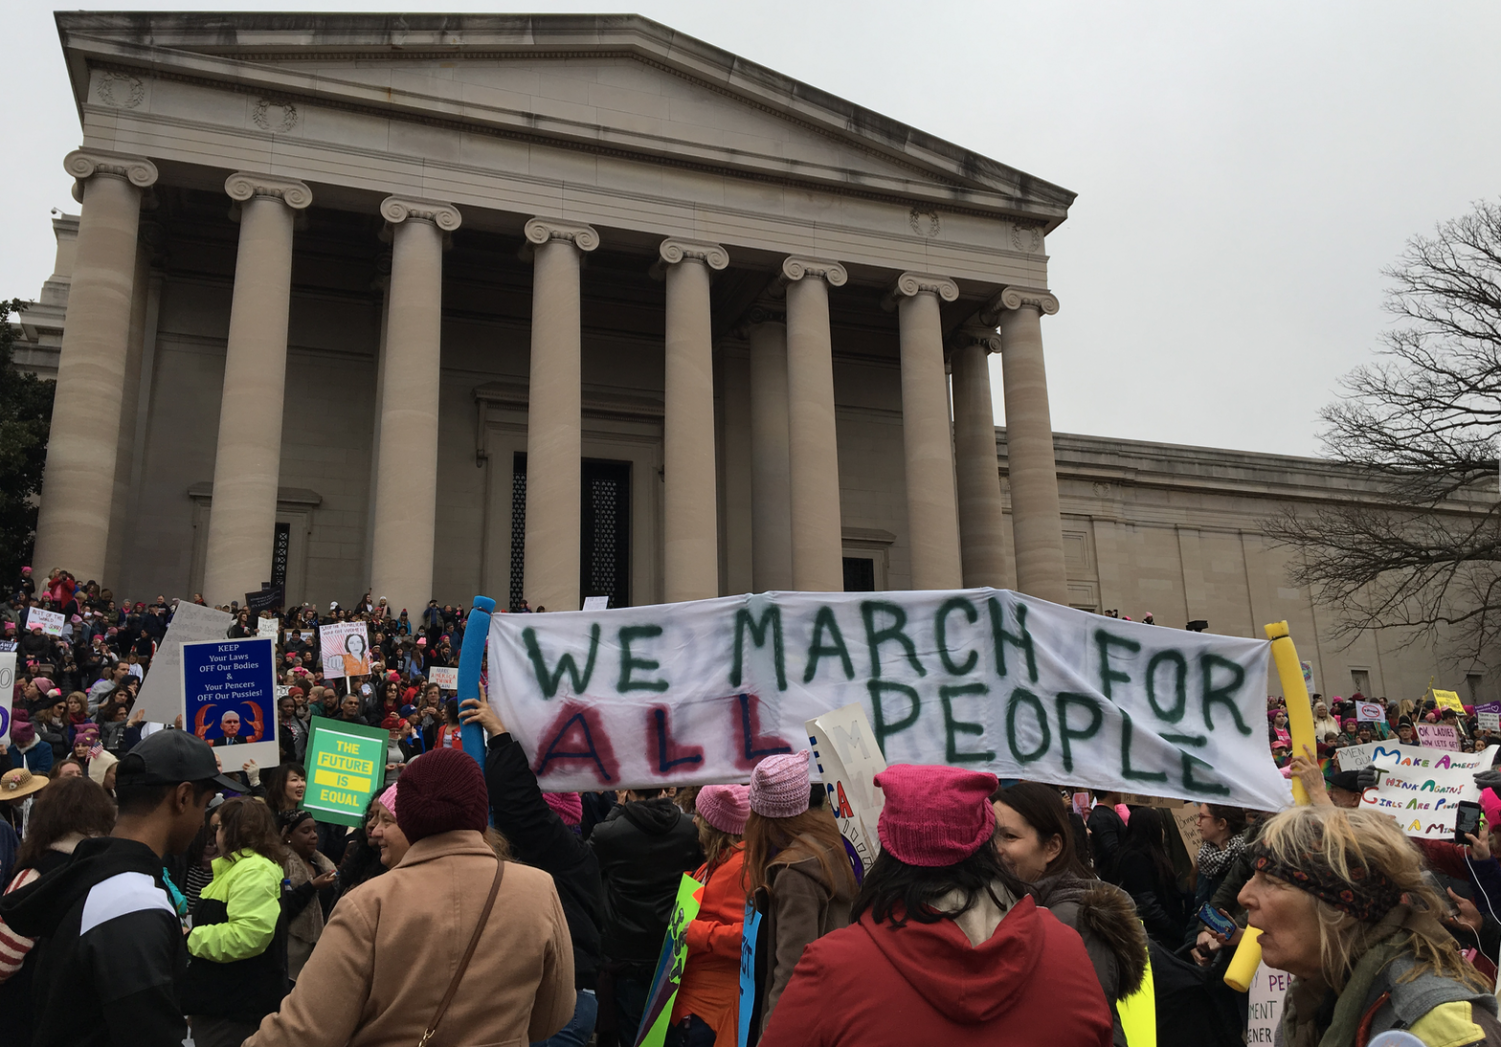 People protest at the Women's March on Washington on January 24, 2017.